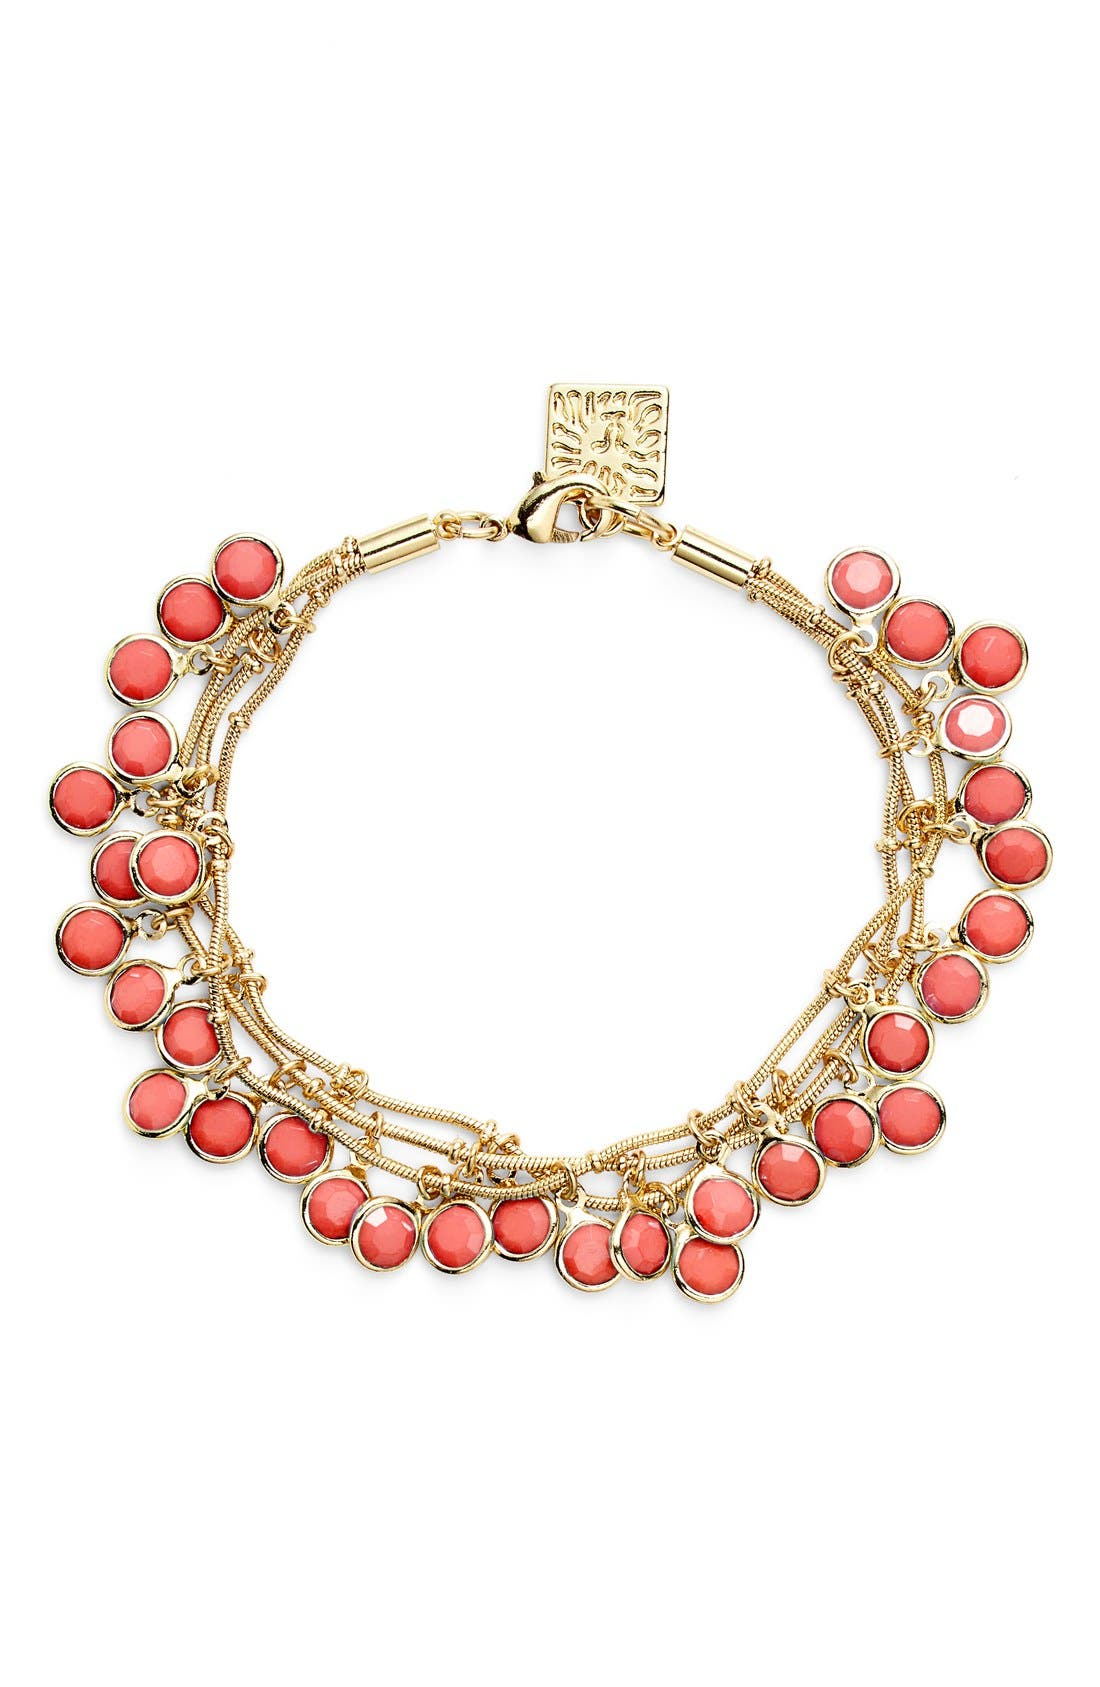 Main Image - Anne Klein 'Beacon Ct.' Multistrand Charm Bracelet